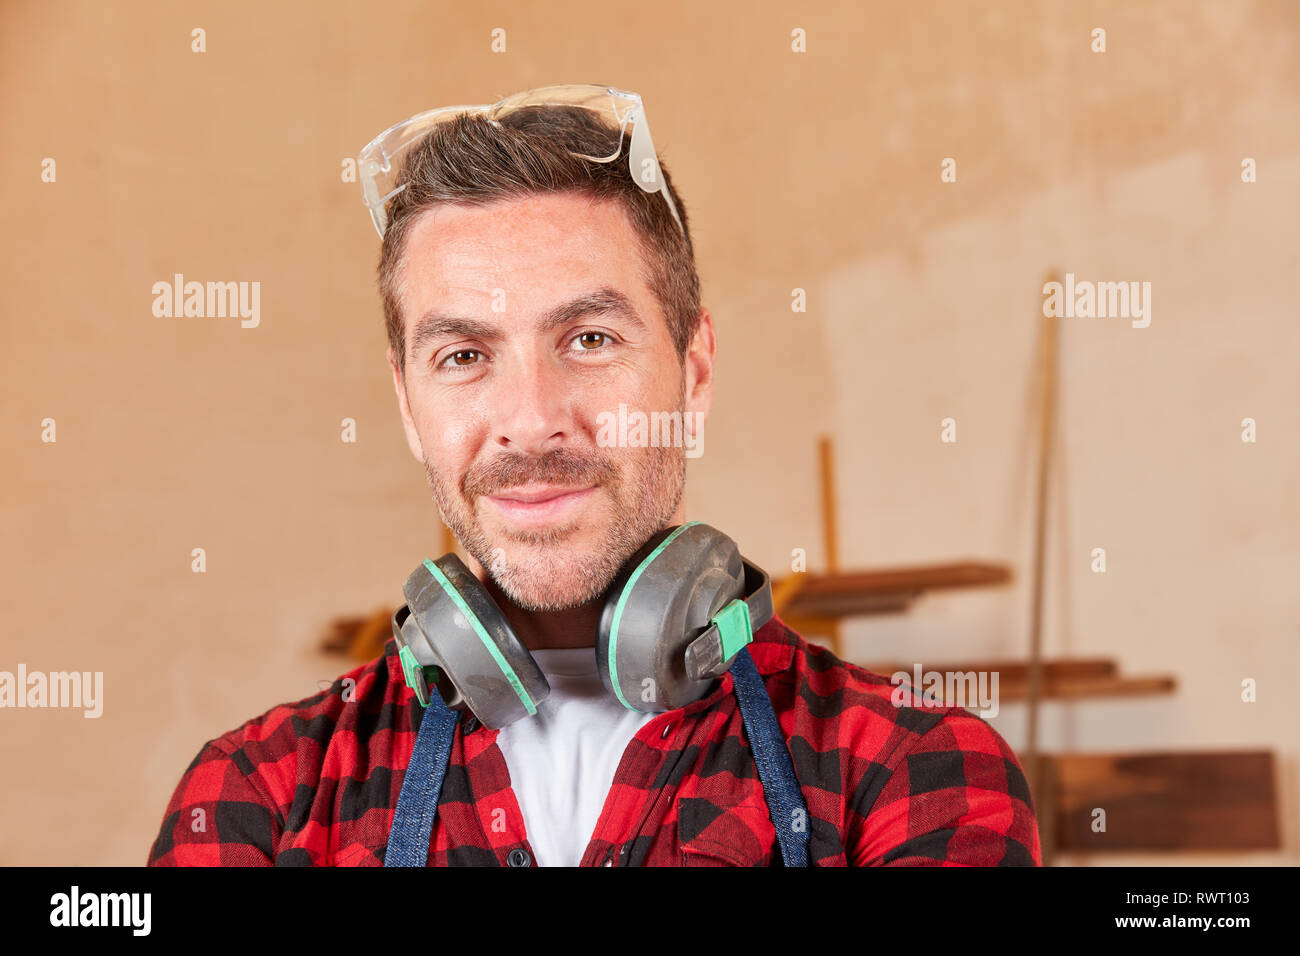 Young man as a worker or joiner apprentice with hearing protection and goggles - Stock Image